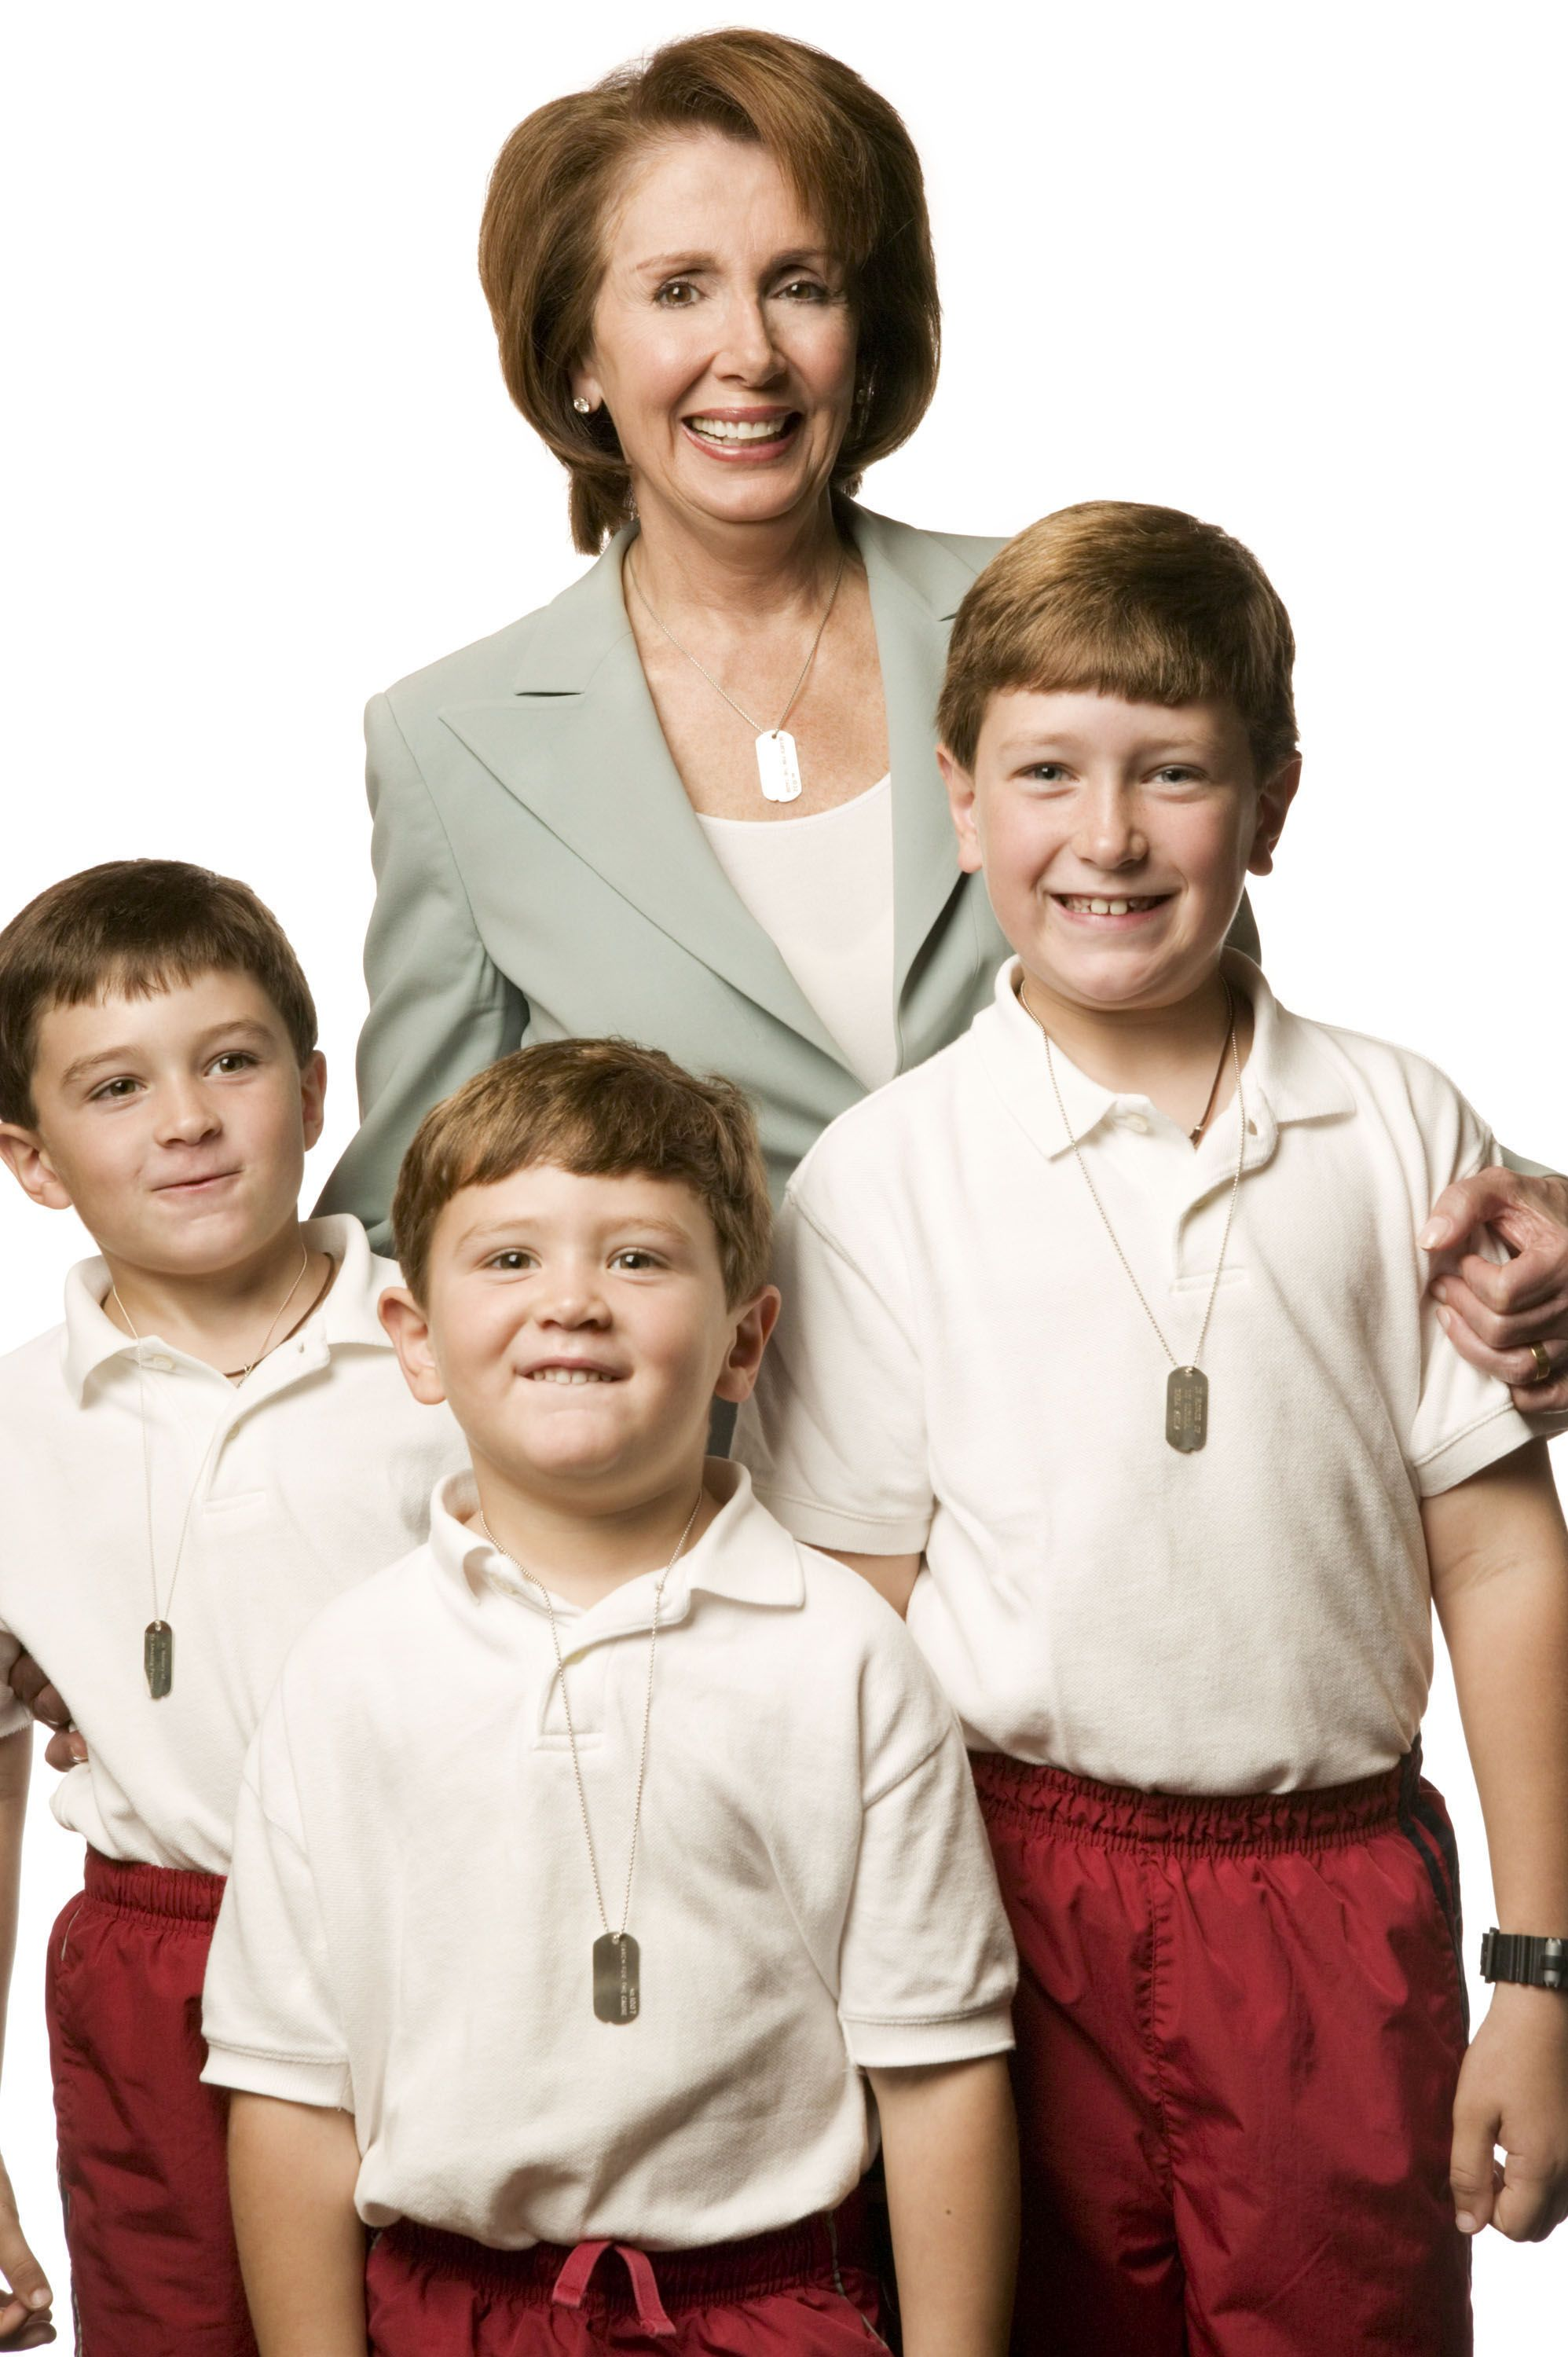 Pelosi poses for a photo with three of her grandchildren in a portrait series for the Search for the Cause campaign, which benefits cancer research.